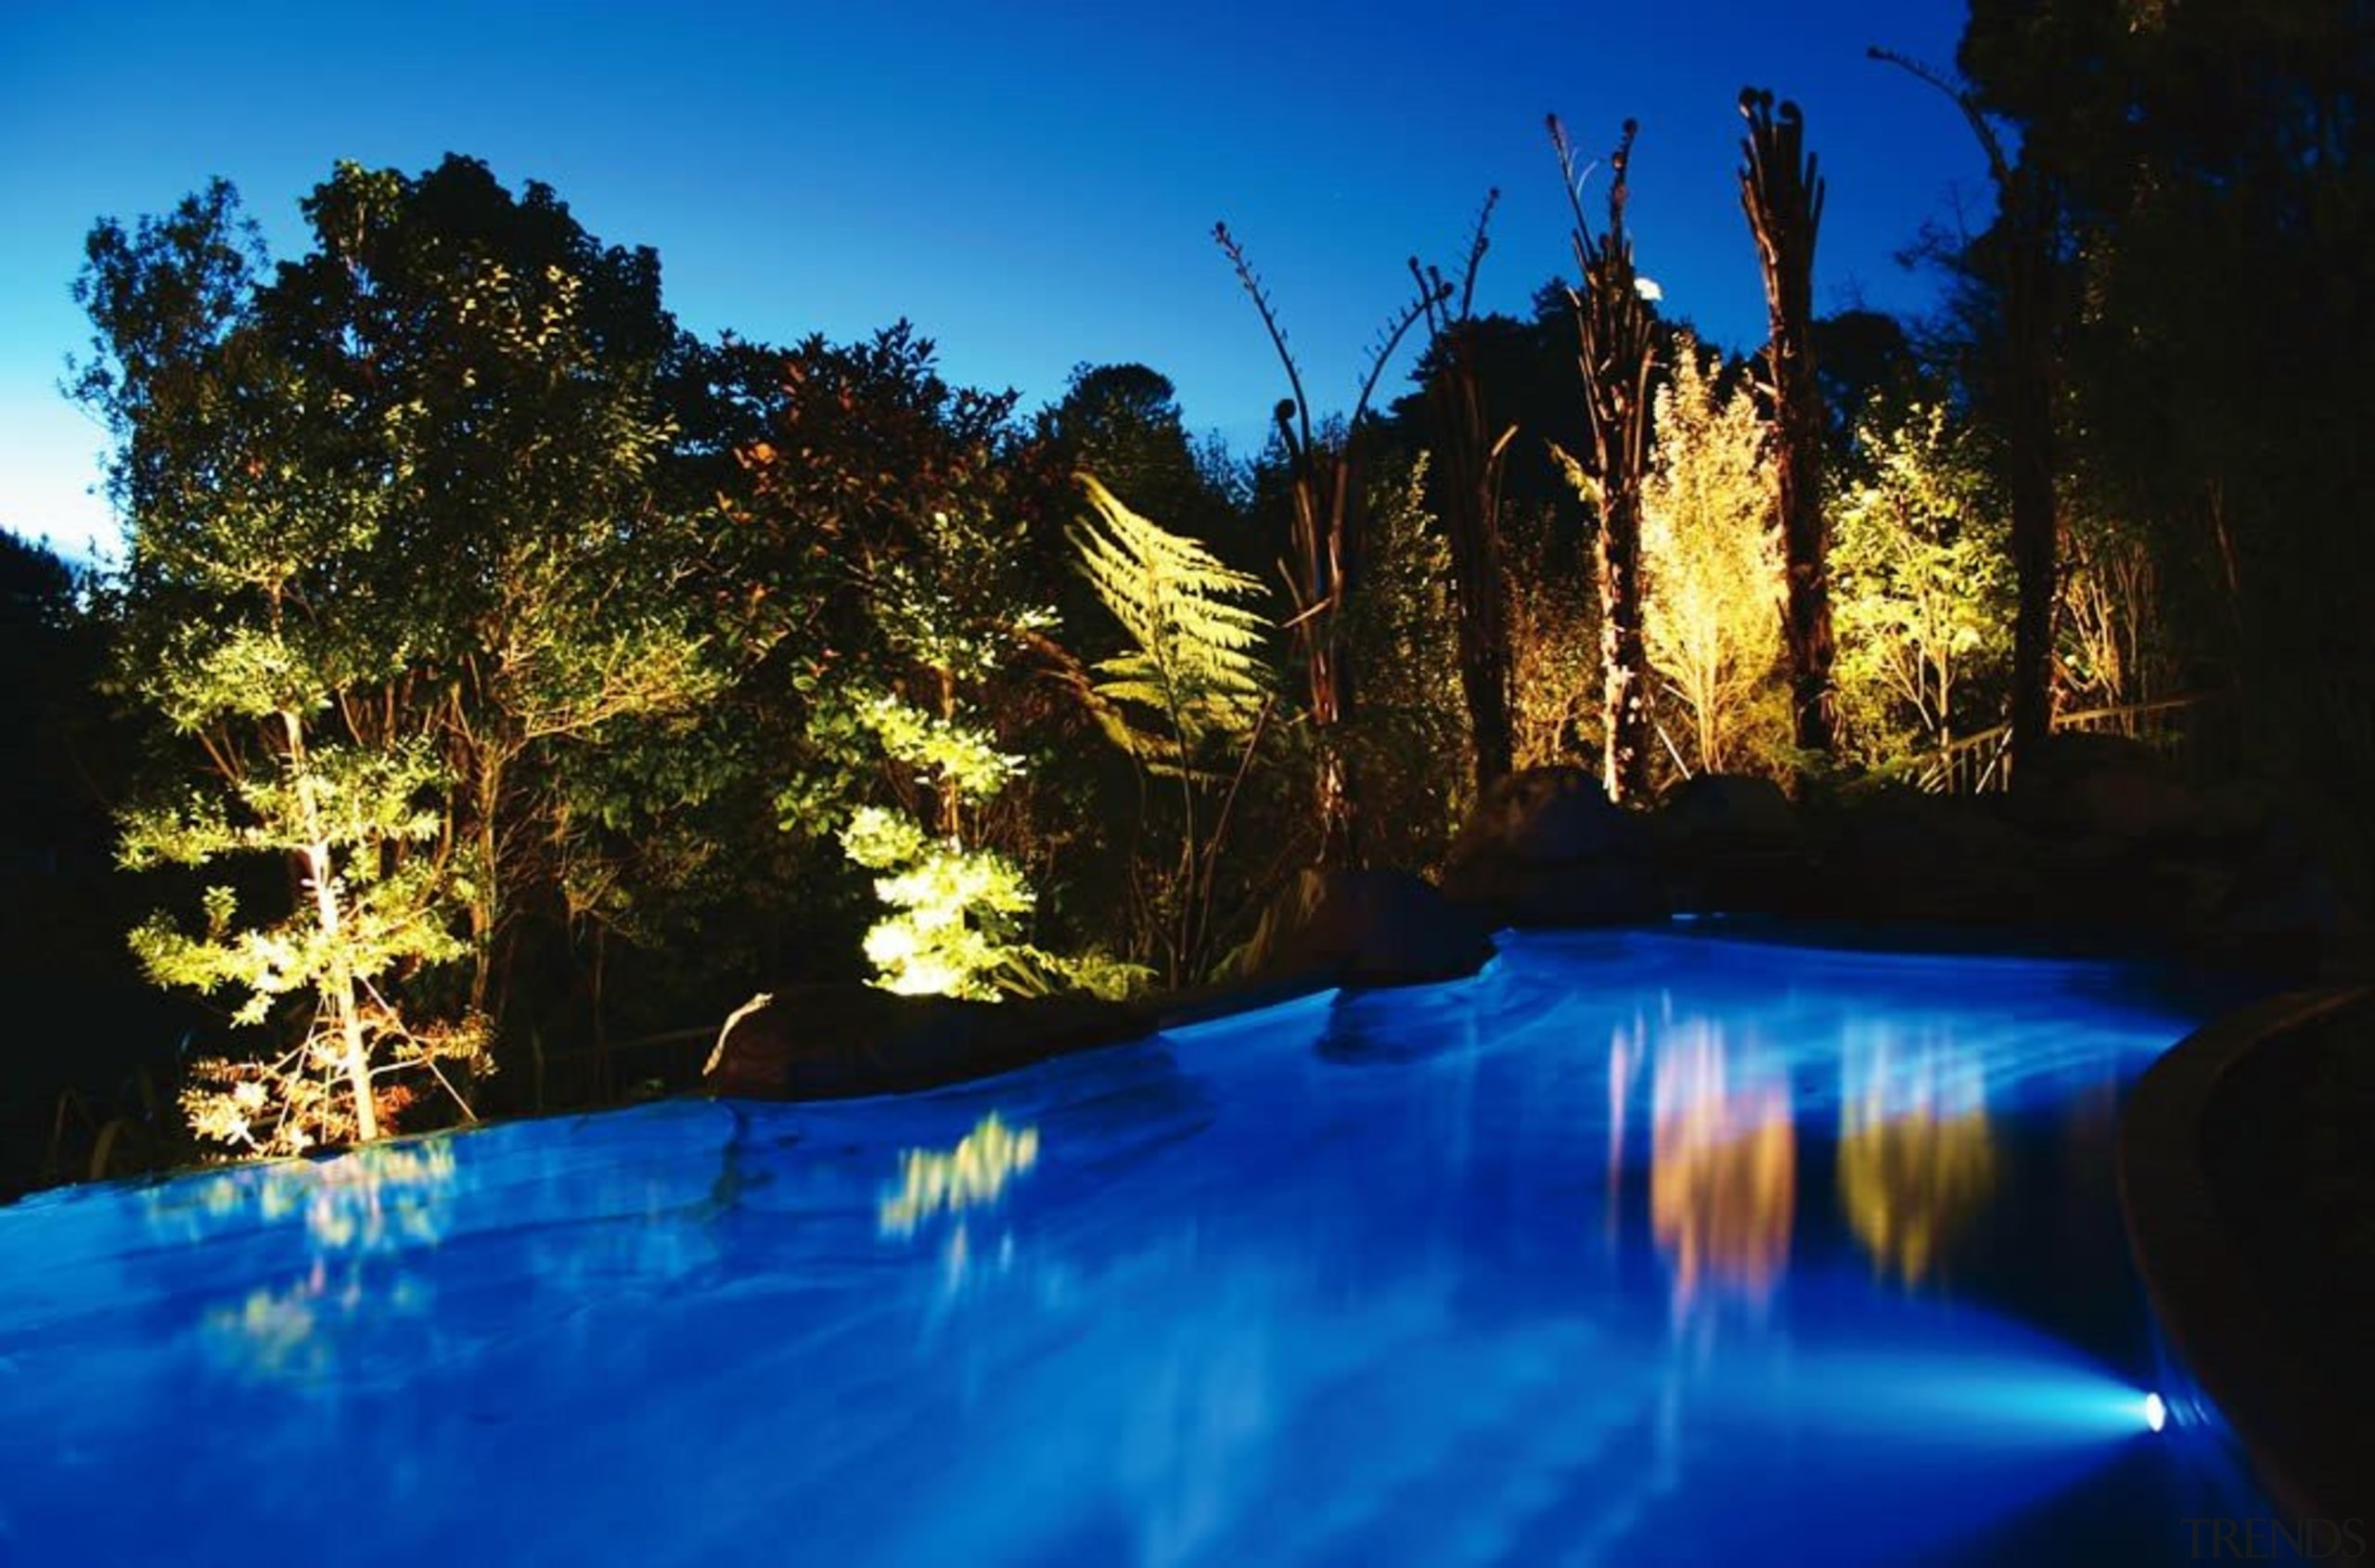 Residential - Residential - blue | body of blue, body of water, evening, lake, landscape, landscape lighting, light, lighting, nature, reflection, river, sky, swimming pool, tree, water, water feature, blue, black